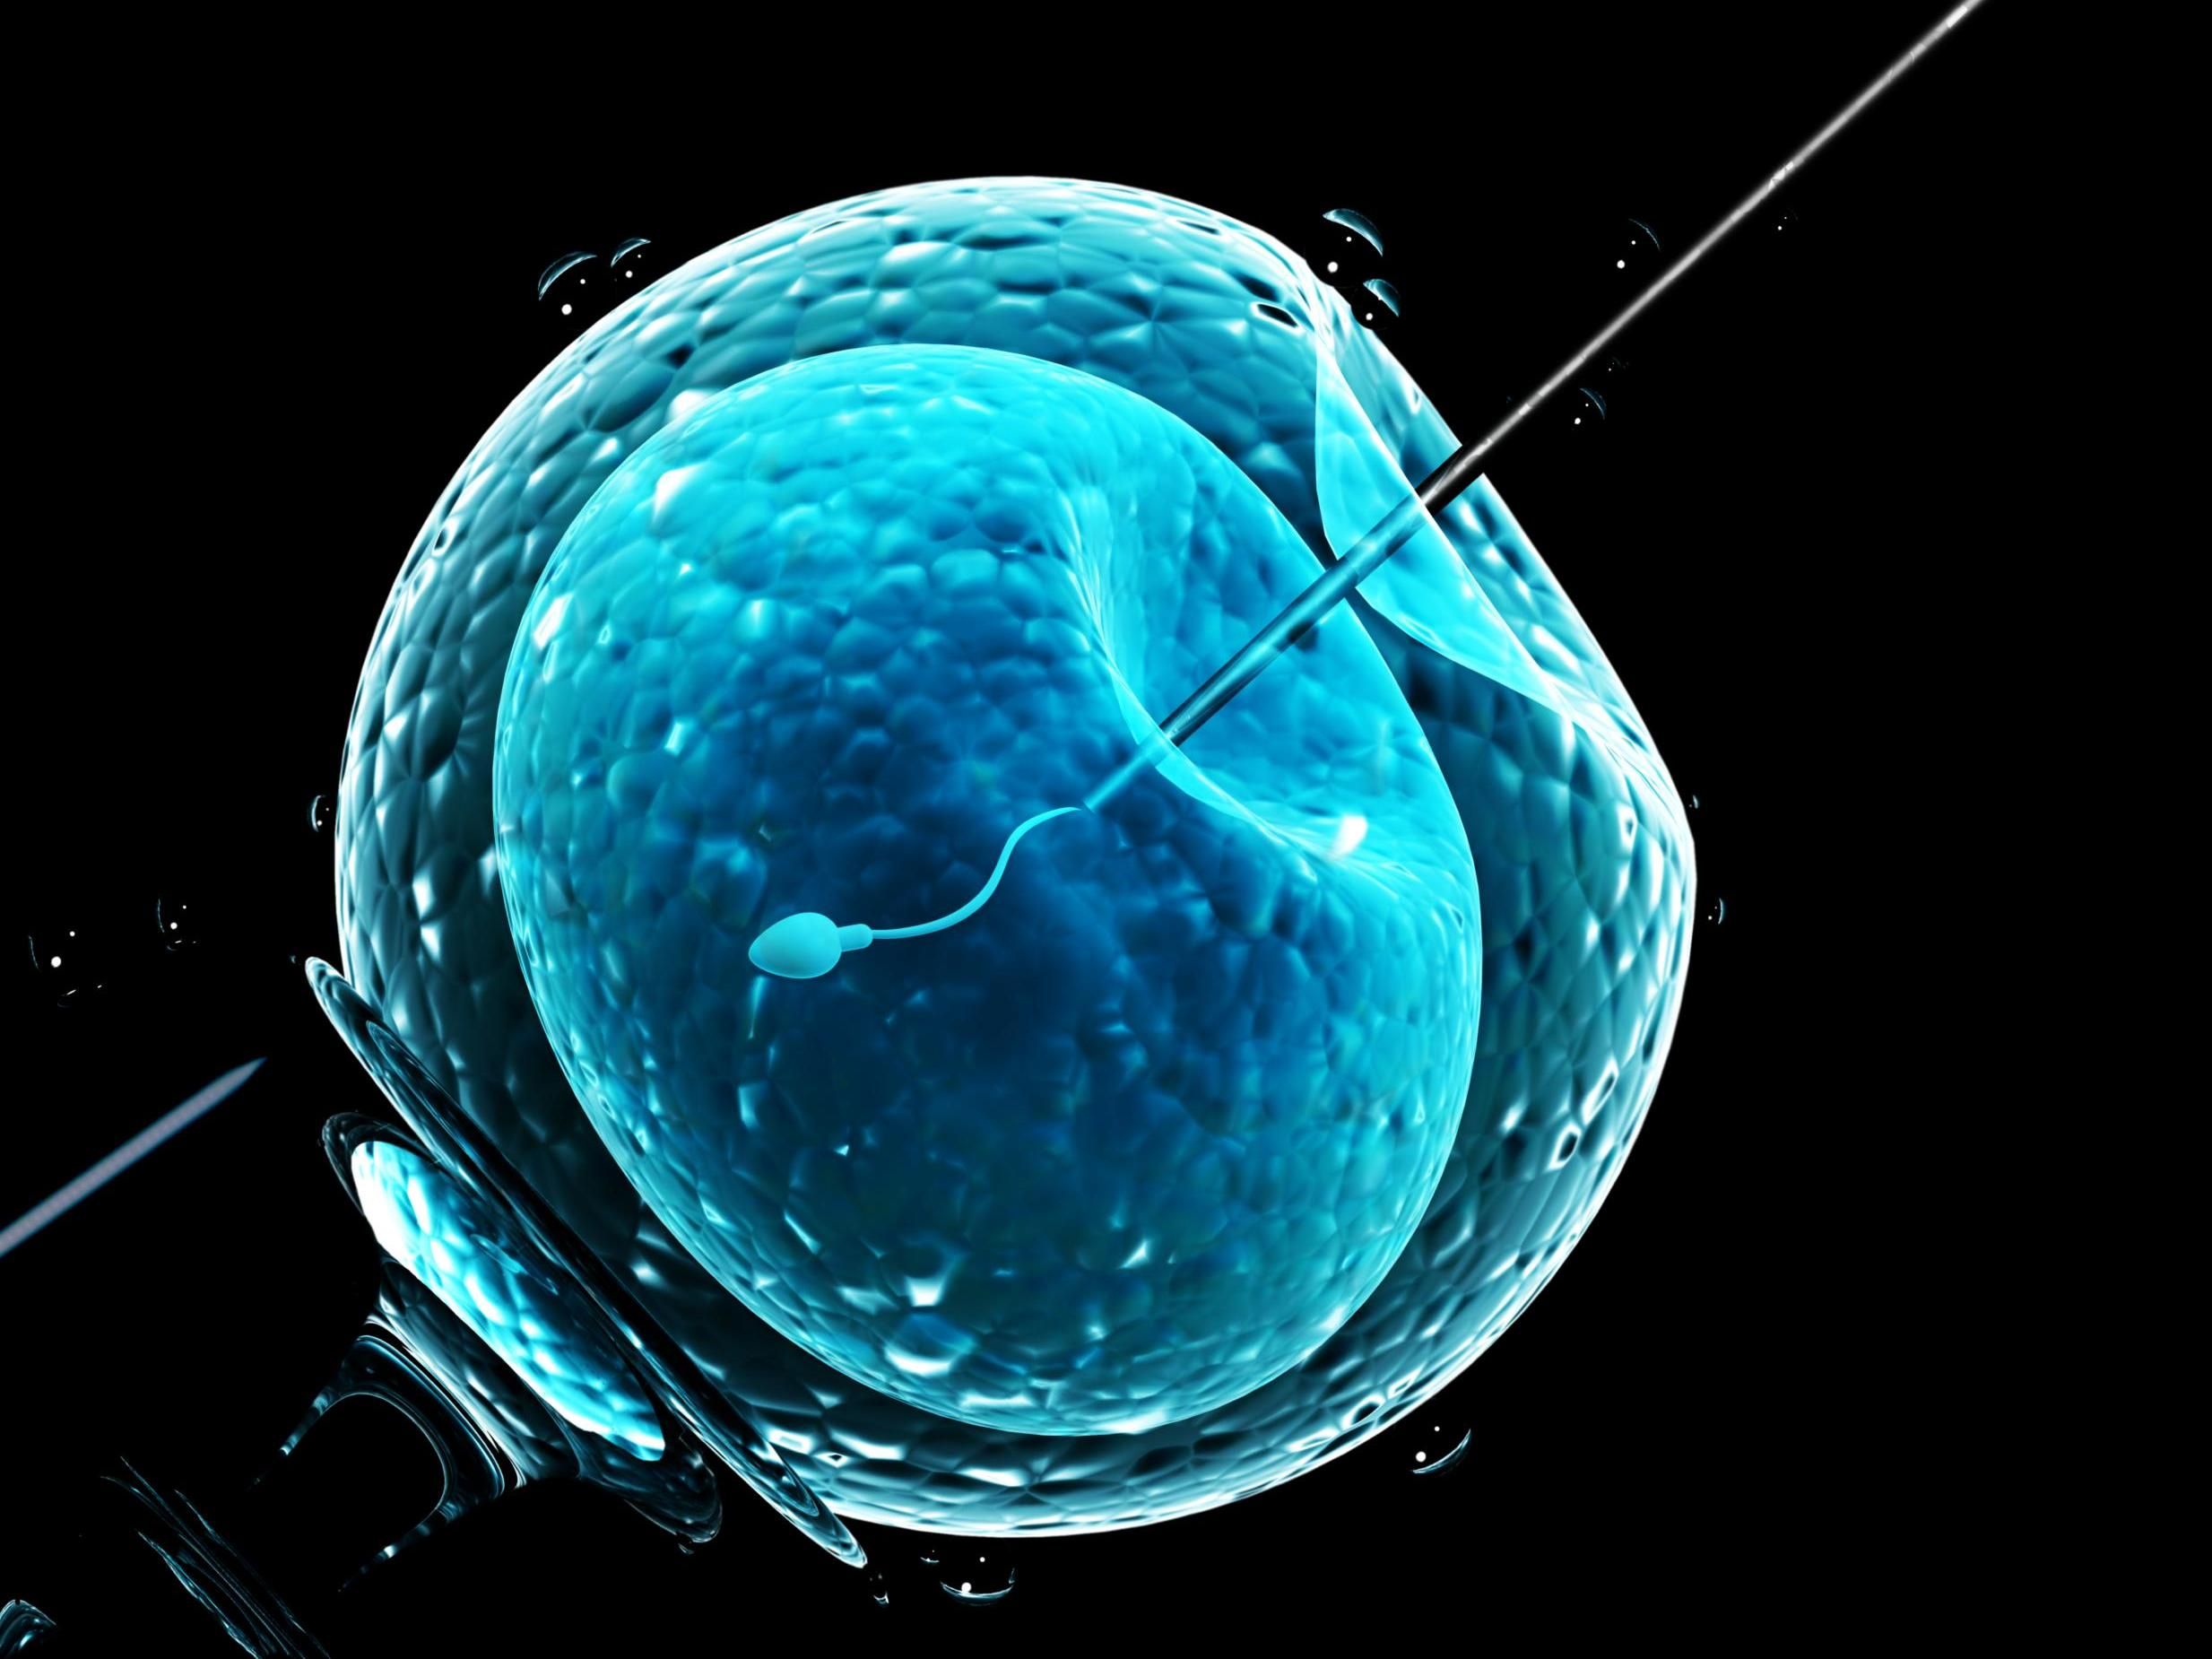 IVF treatment programs